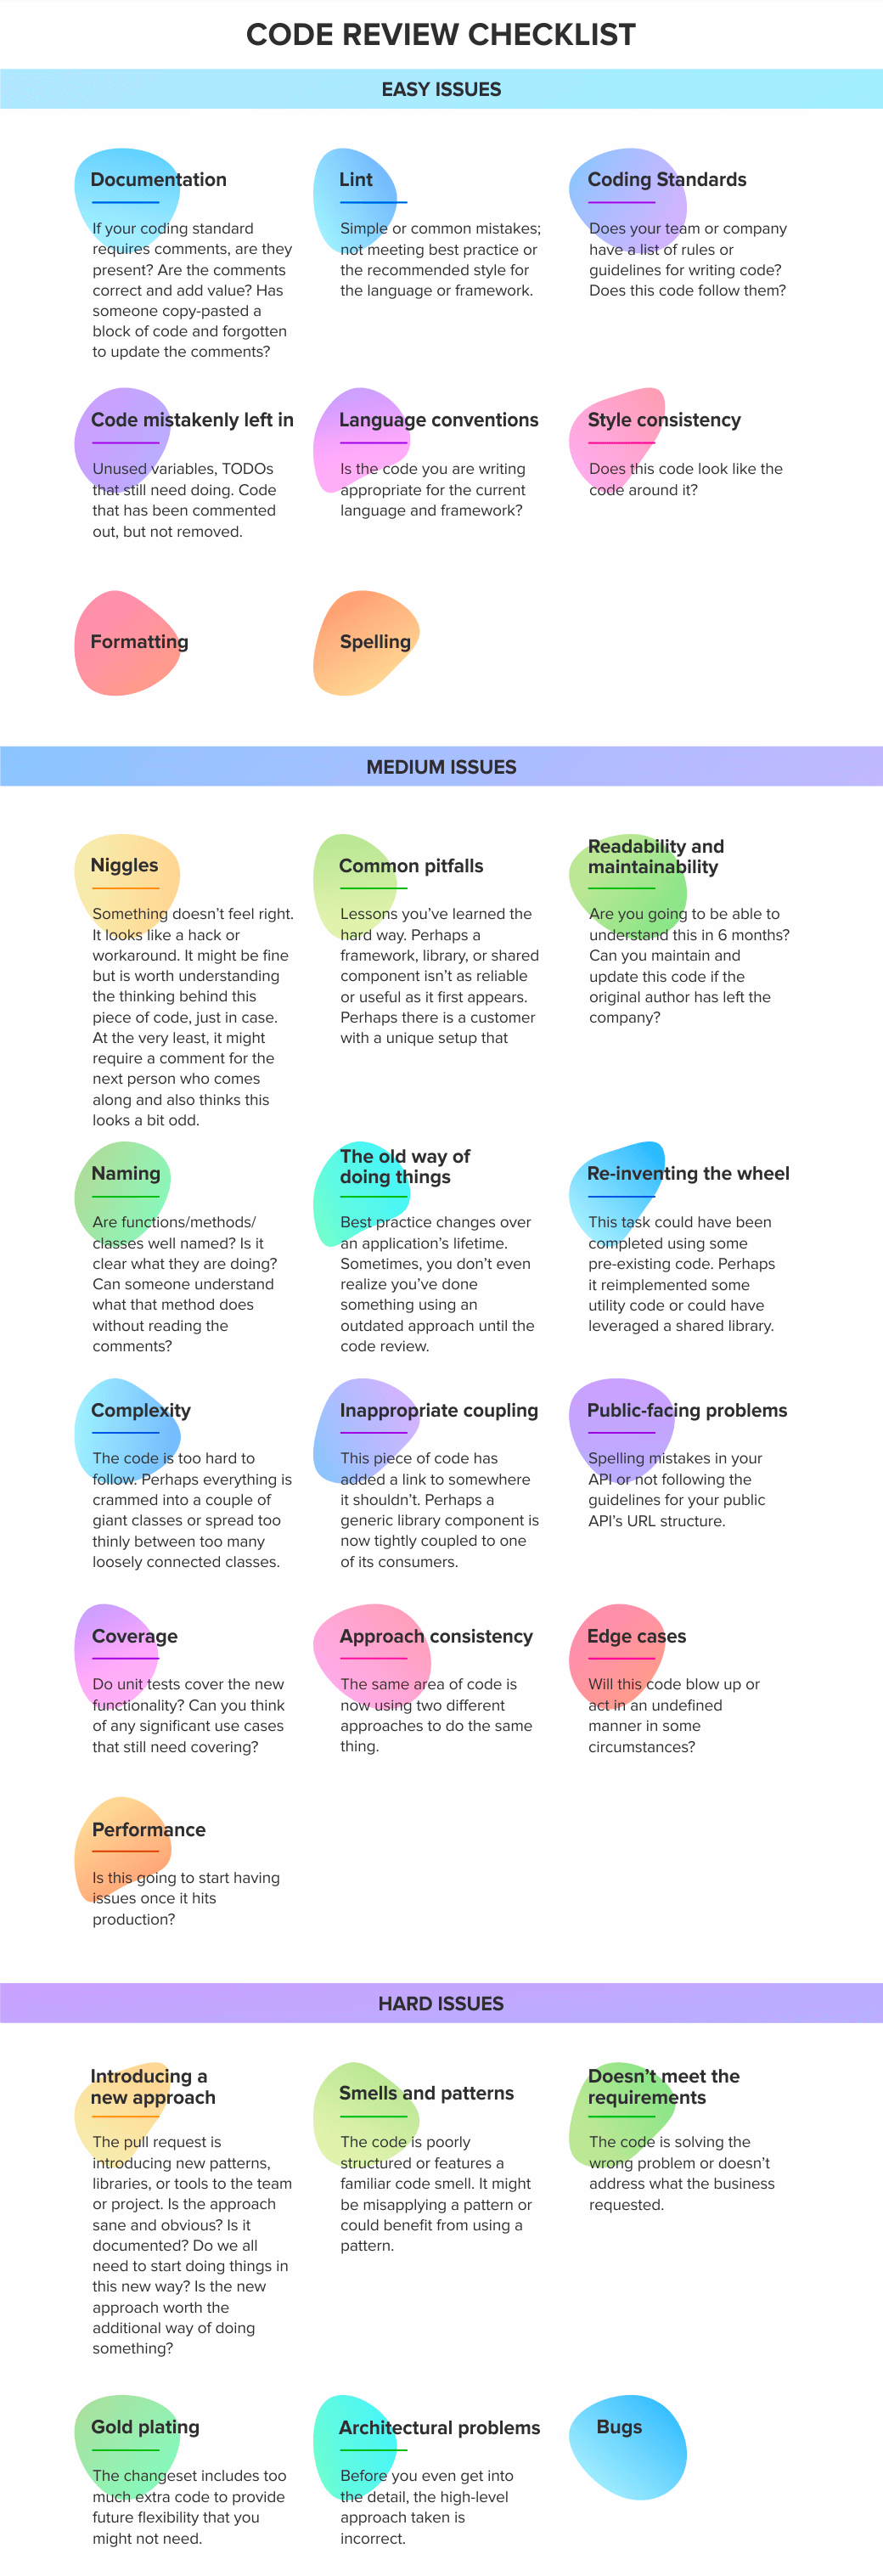 WhyCodeReviewIsAMust-HaveforYourProduct_Infographic